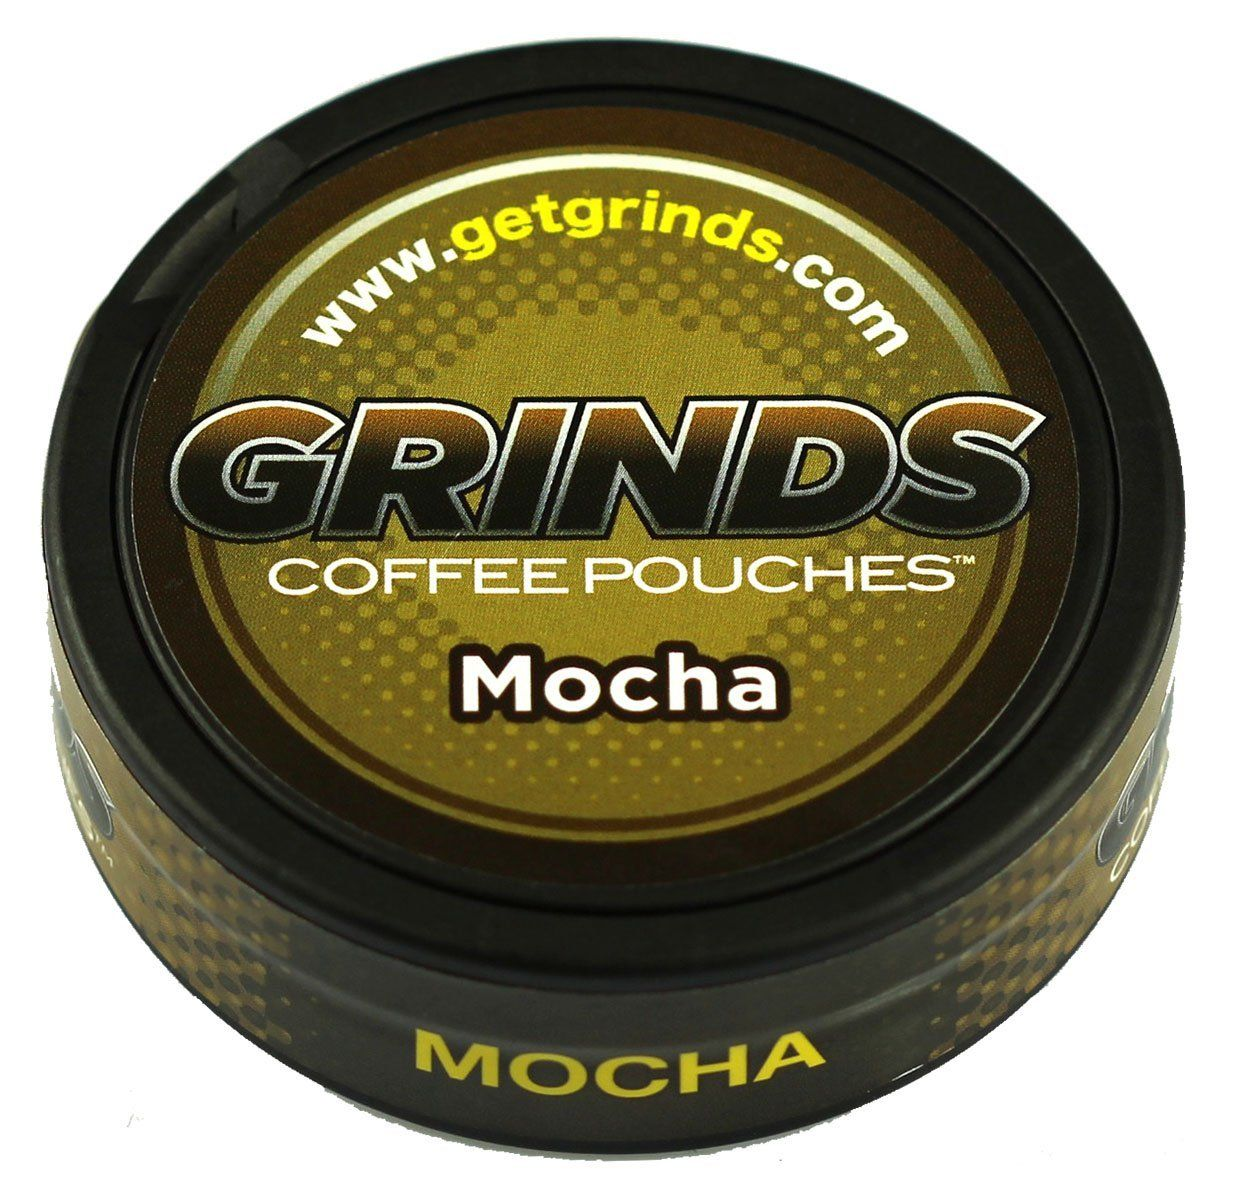 Grinds coffee pouches 10 cans mocha tobacco free